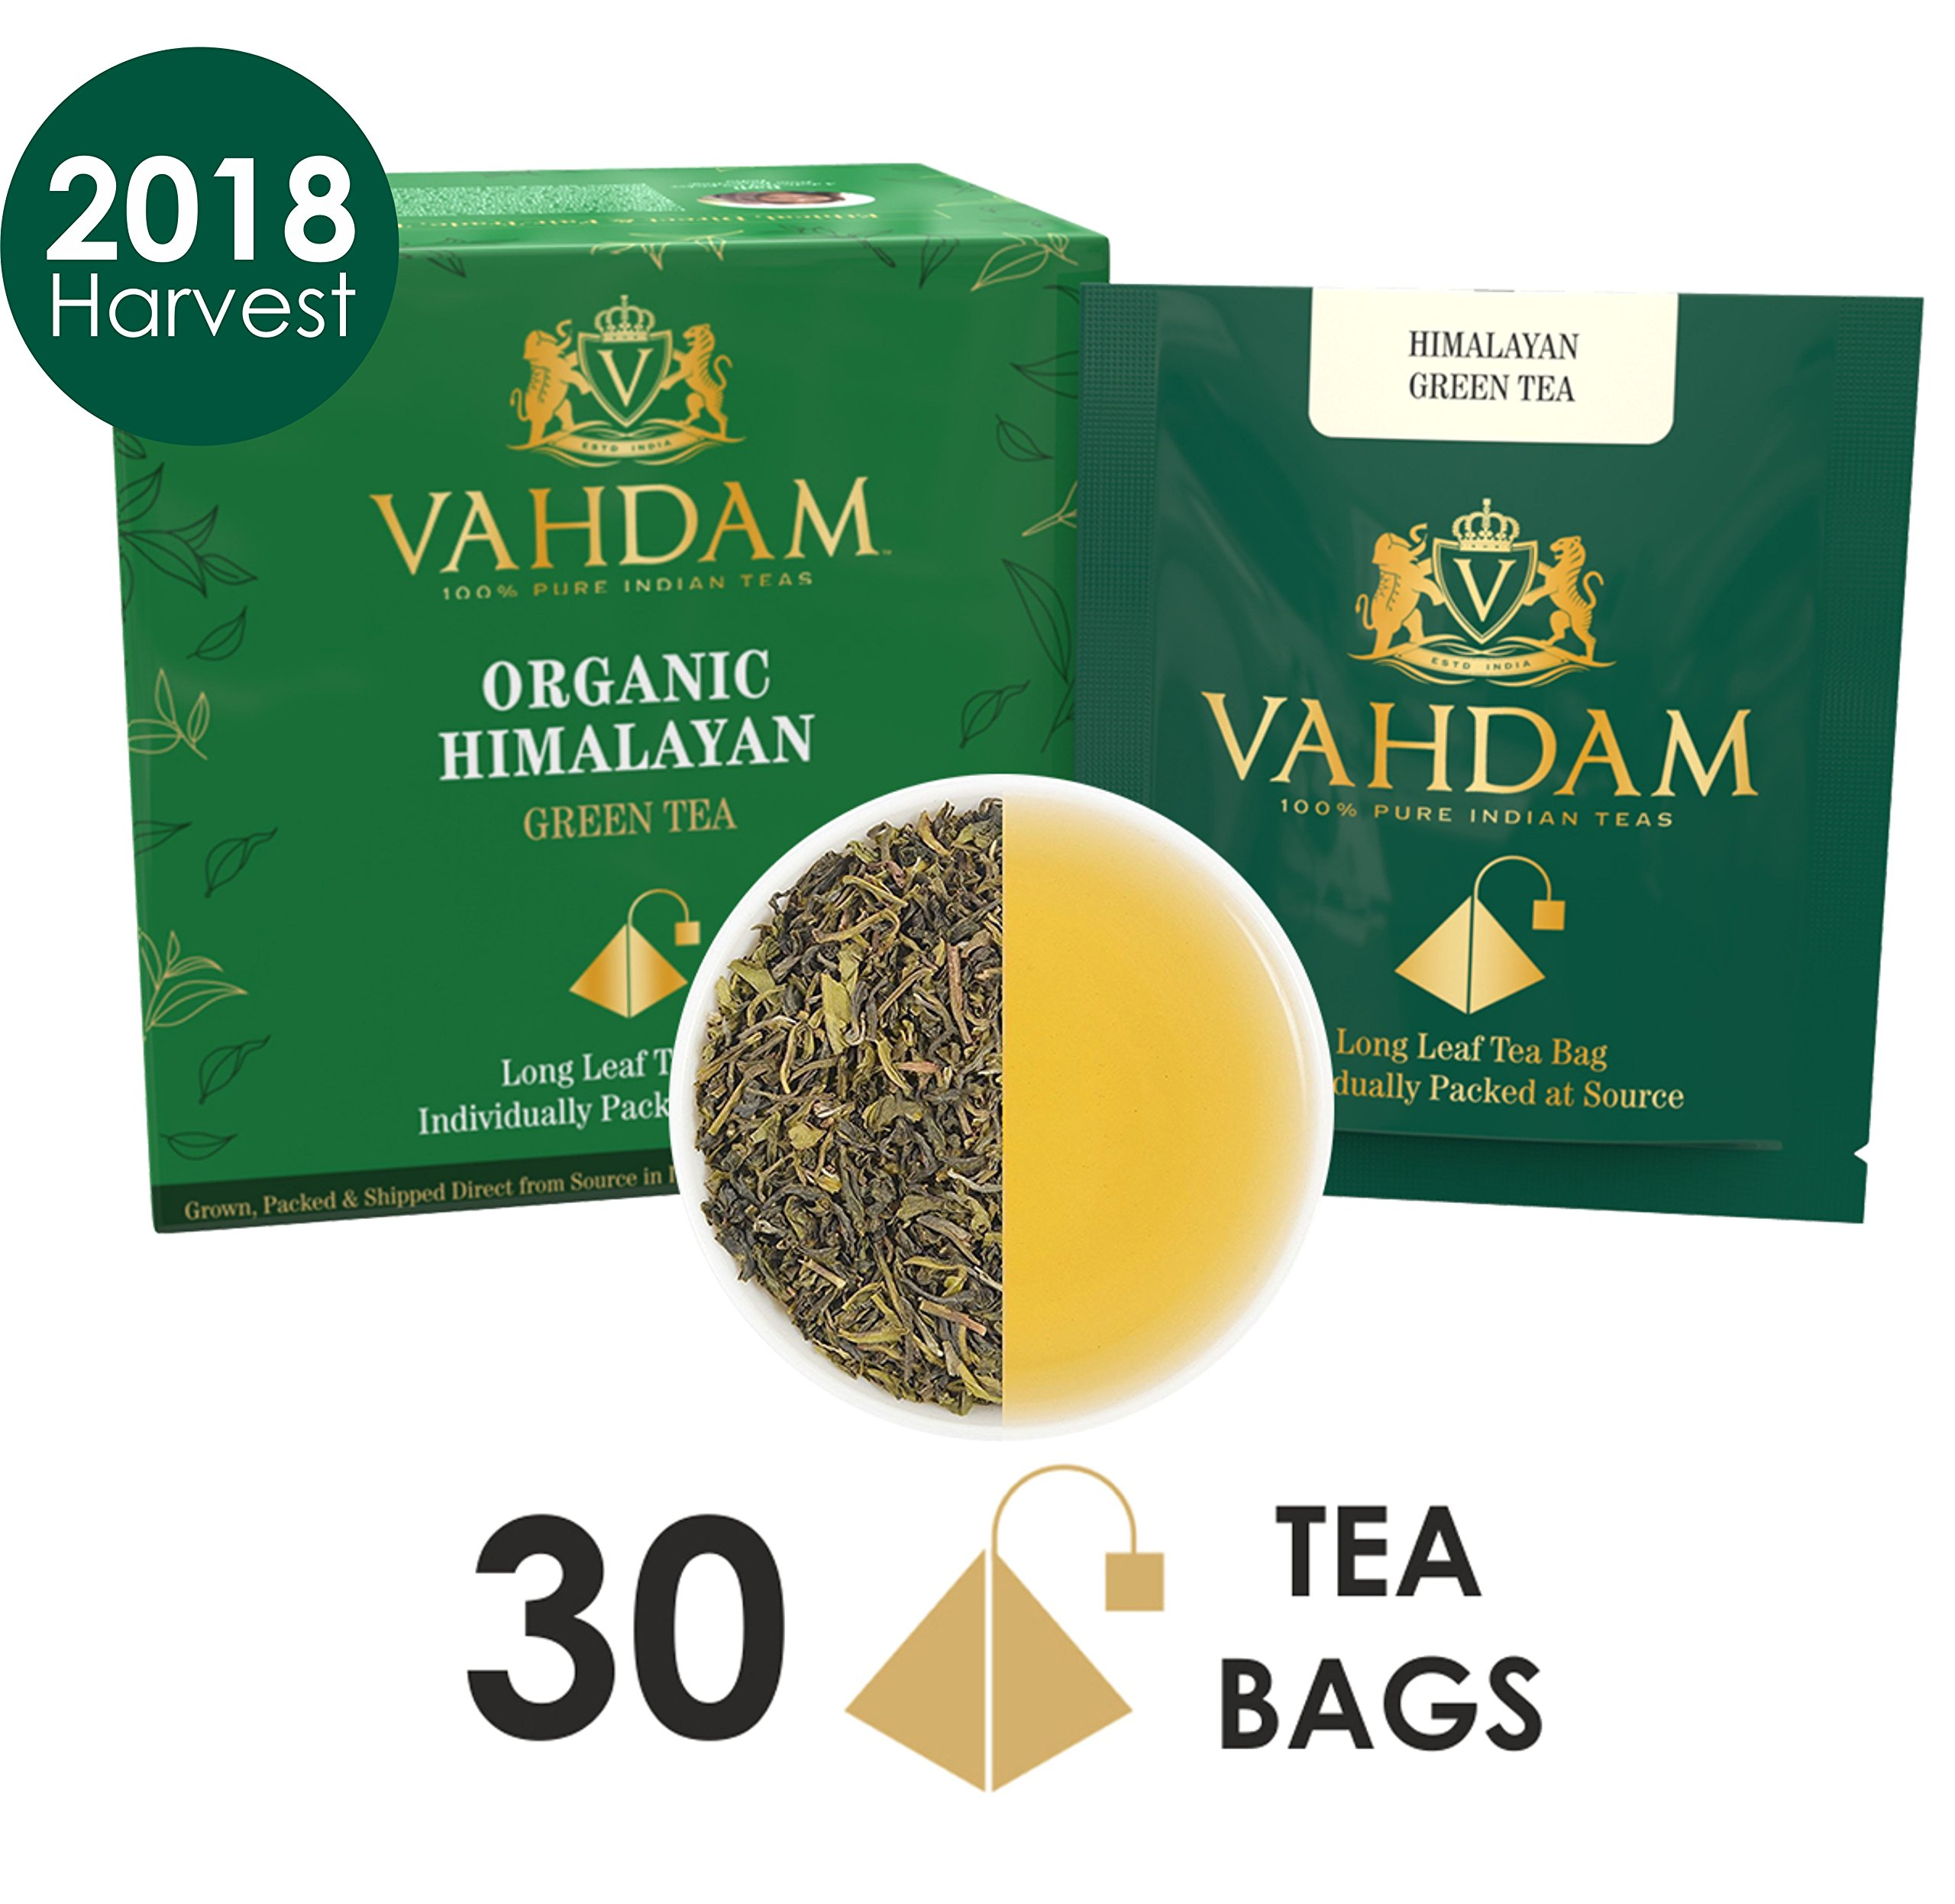 Organic Green Tea Leaves from Himalayas (30 Tea Bags), 100% Natural Weight Loss Tea, Detox Tea, Slimming Tea, ANTI-OXIDANTS RICH - Green Tea Loose Leaf - Brew Hot or Iced Tea - 15 Ct (Pack of 2) by VAHDAM